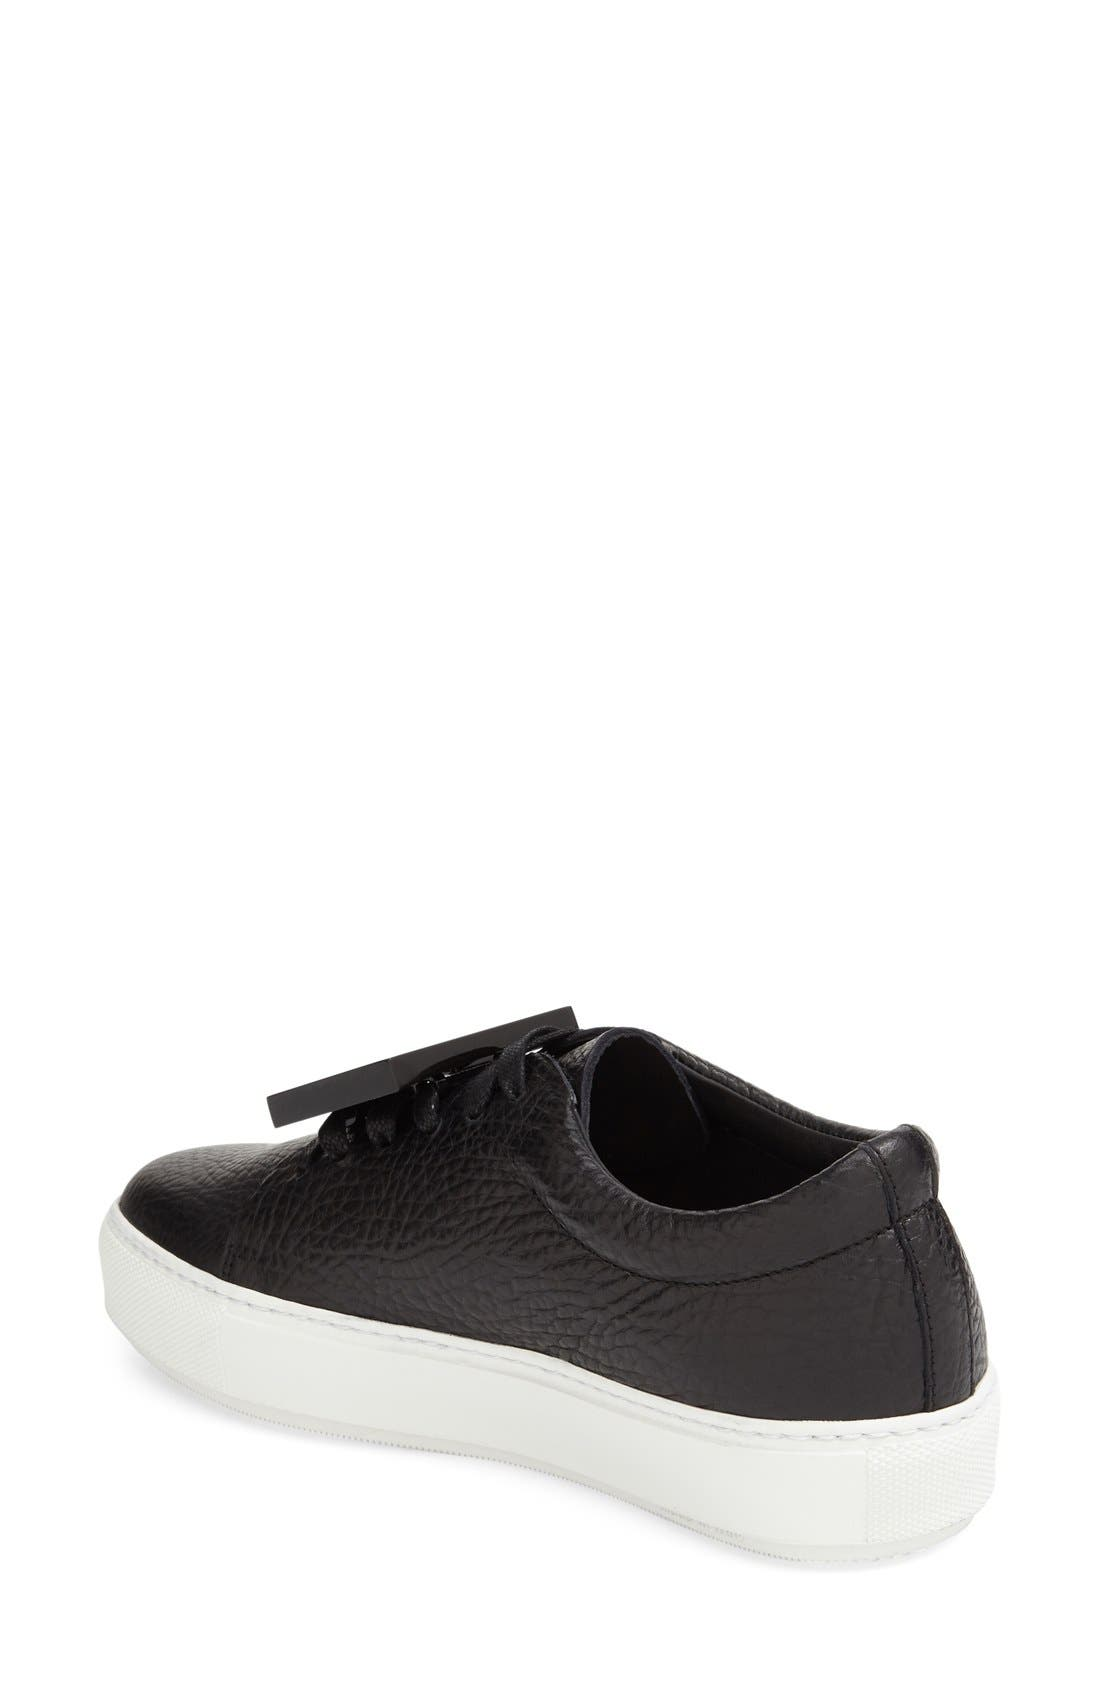 Adriana - Grain Leather Sneaker,                             Alternate thumbnail 2, color,                             001